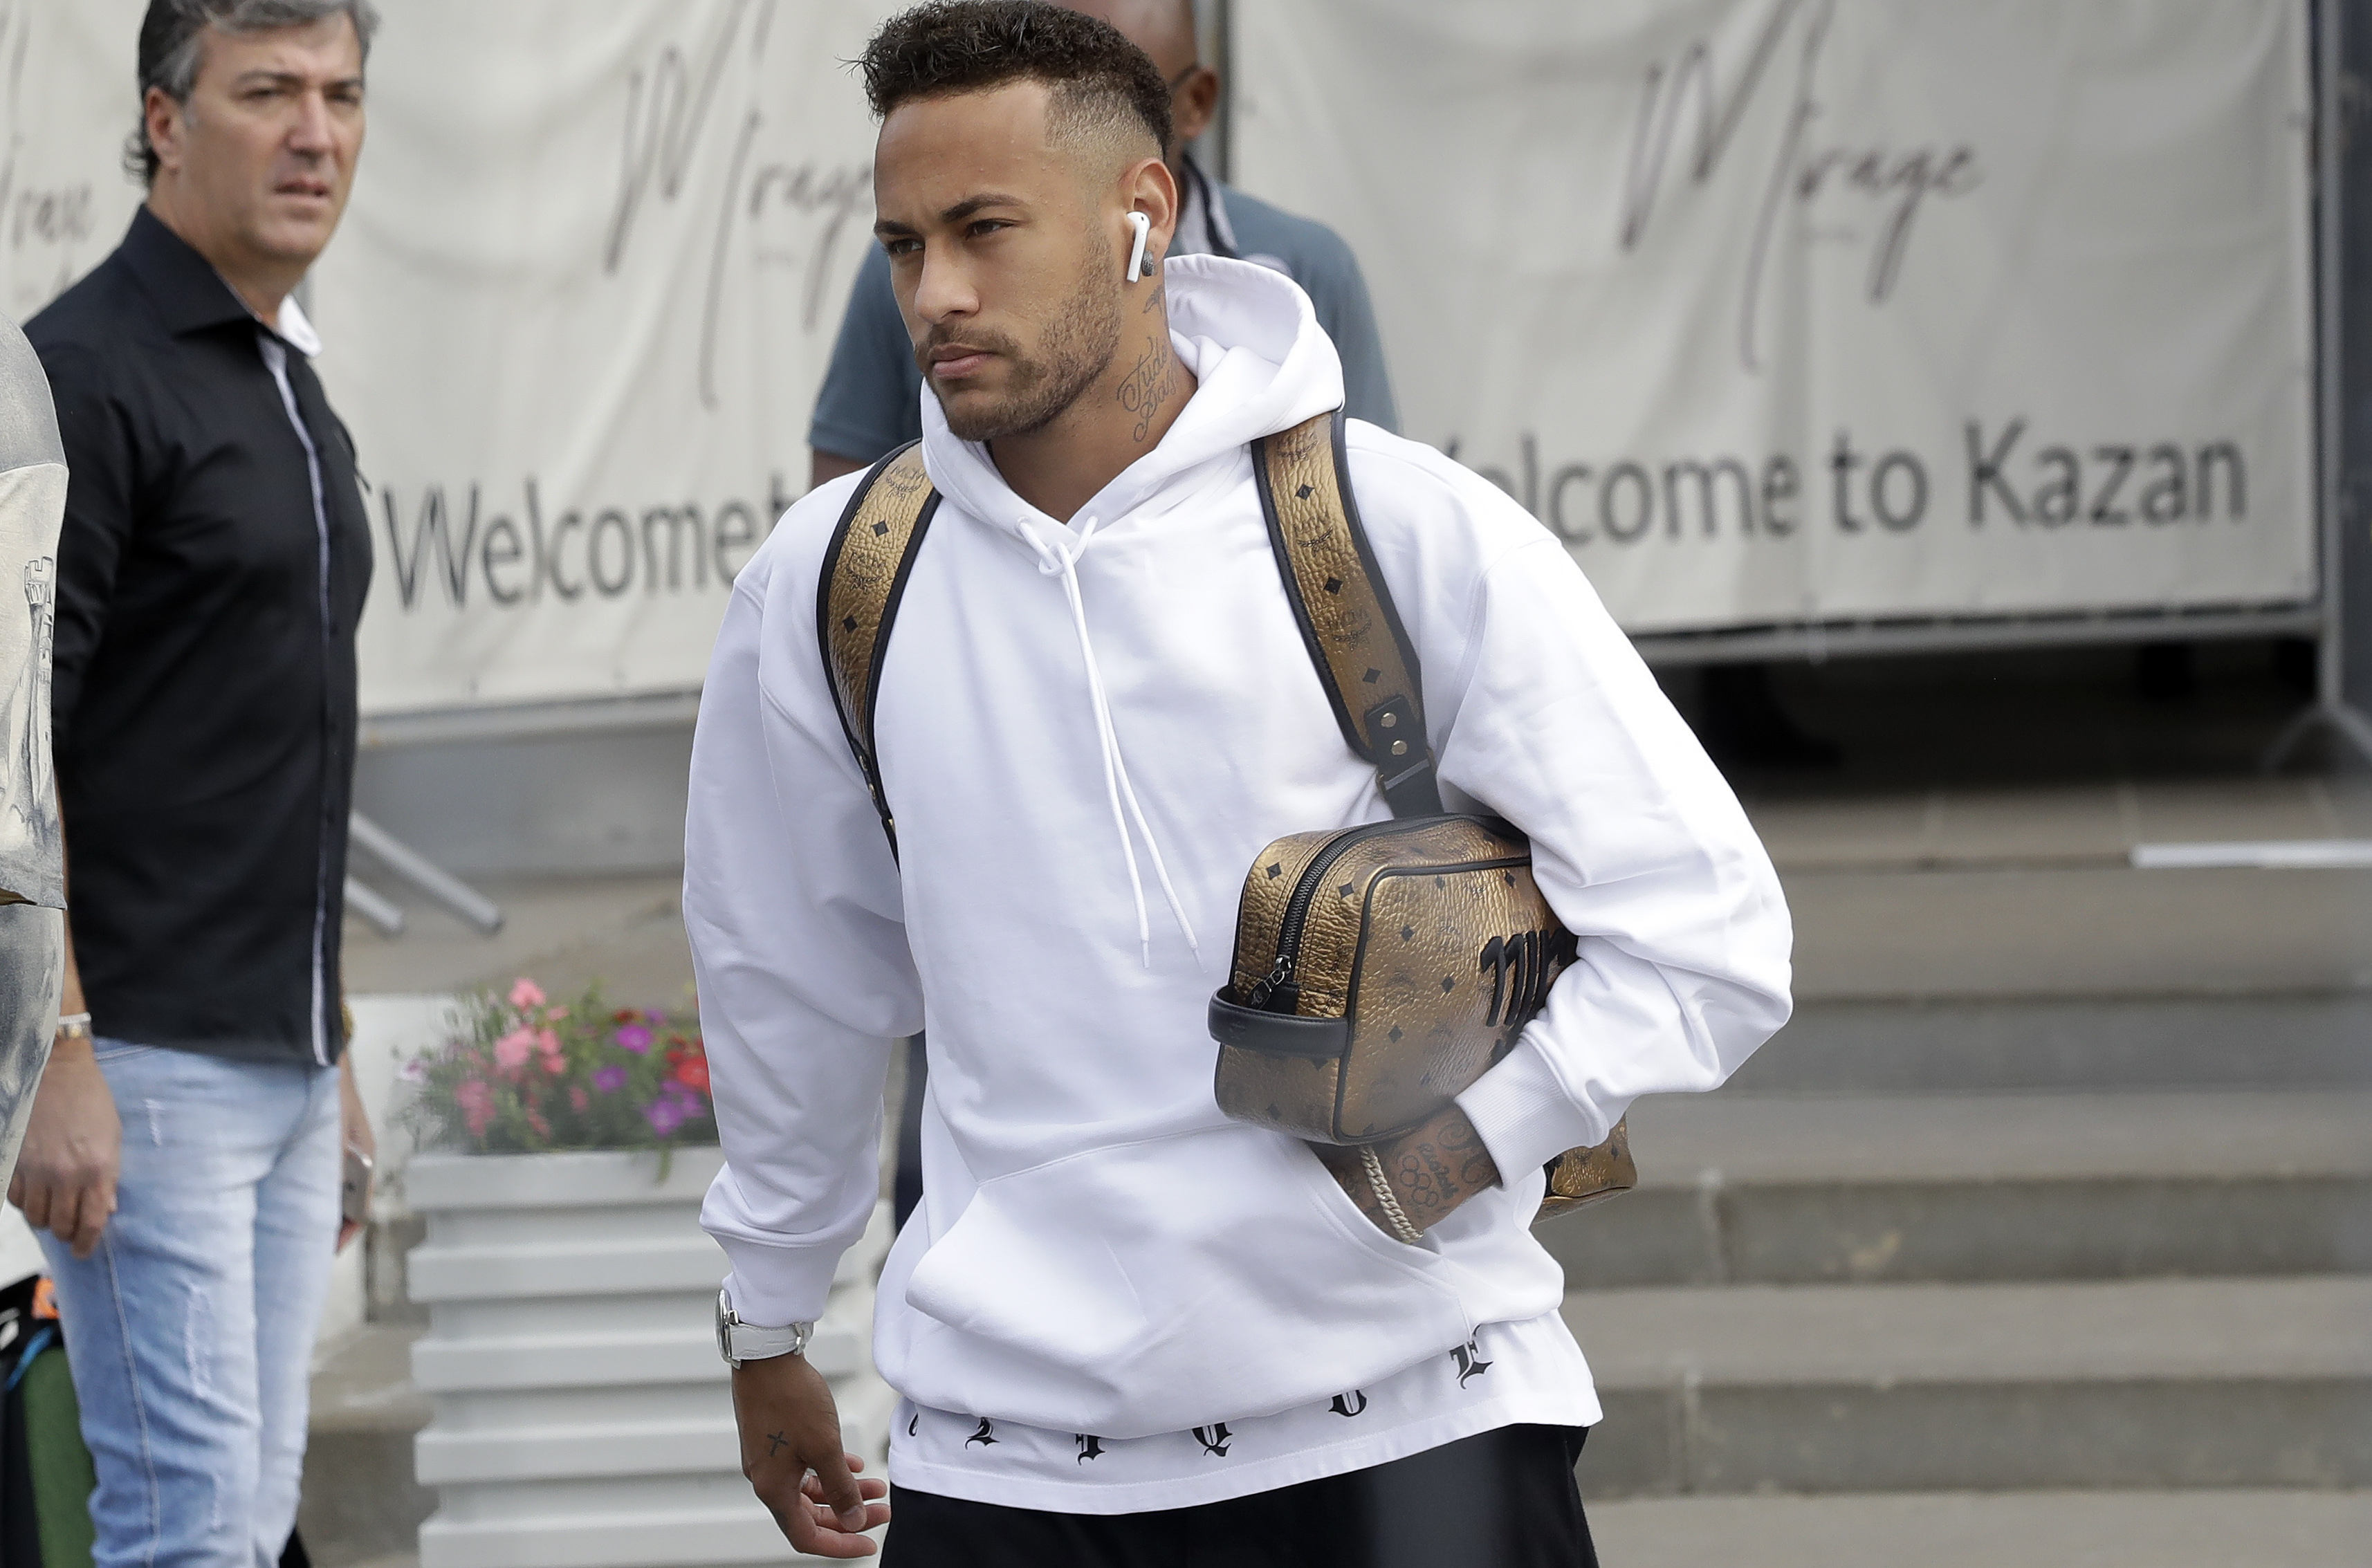 Brazil's Neymar leaves the hotel to board a bus in his way to the airport Airport in Kazan, Russia, Saturday, July 7, 2018. Brazil lost the quarterfinal against Belgium and leave the soccer World Cup. (AP Photo/Andre Penner)